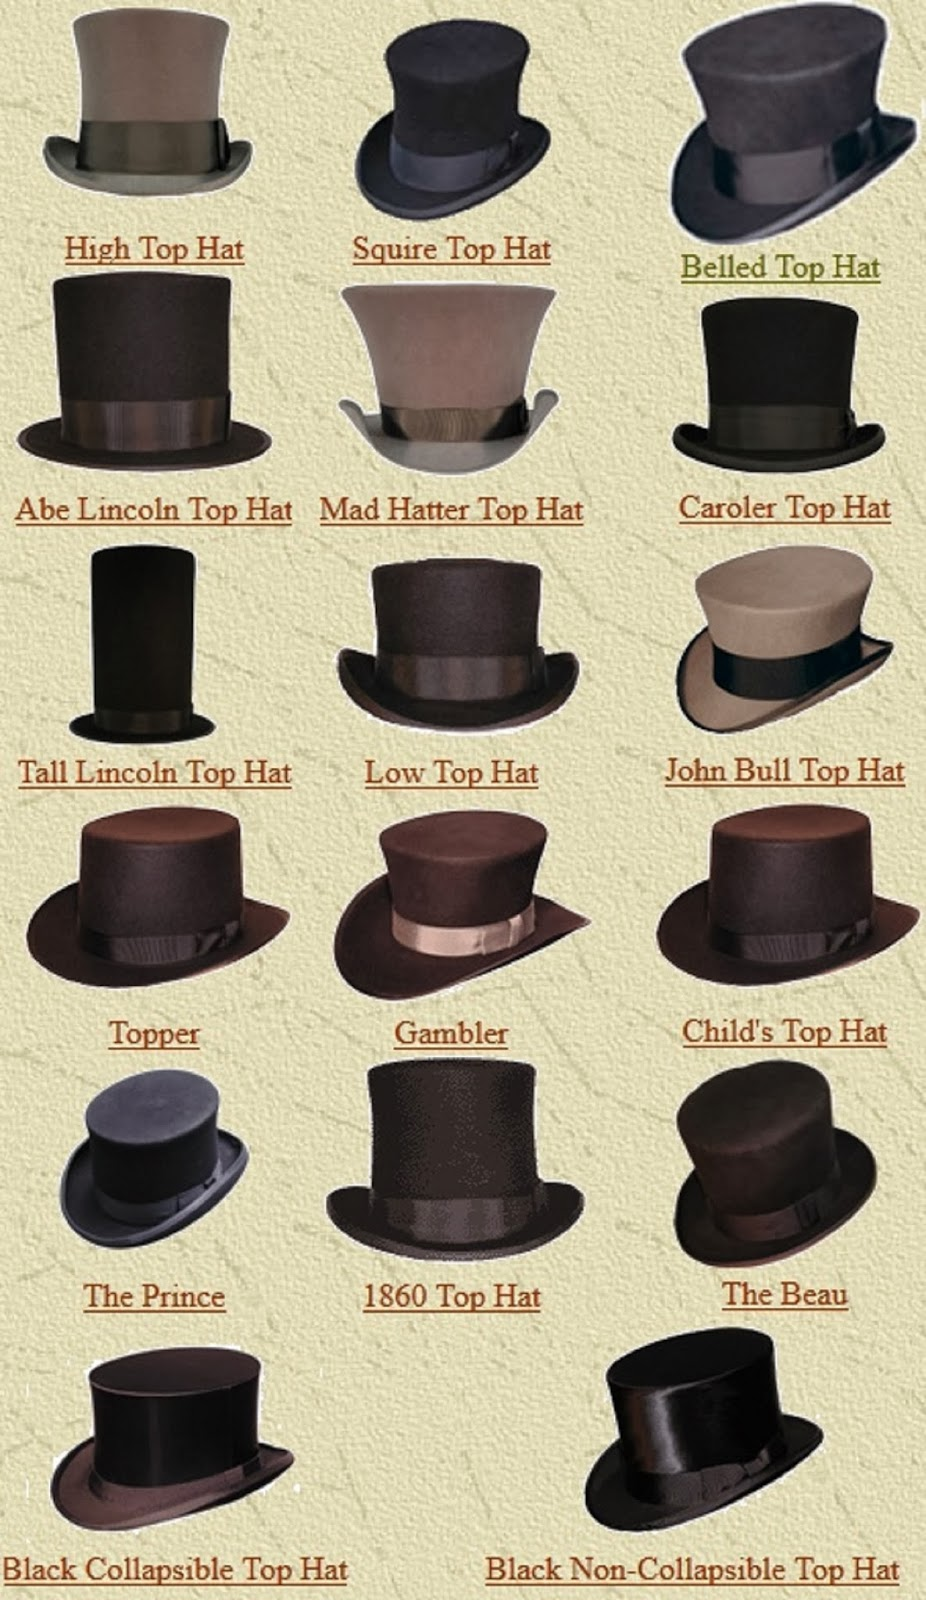 Types of top hats